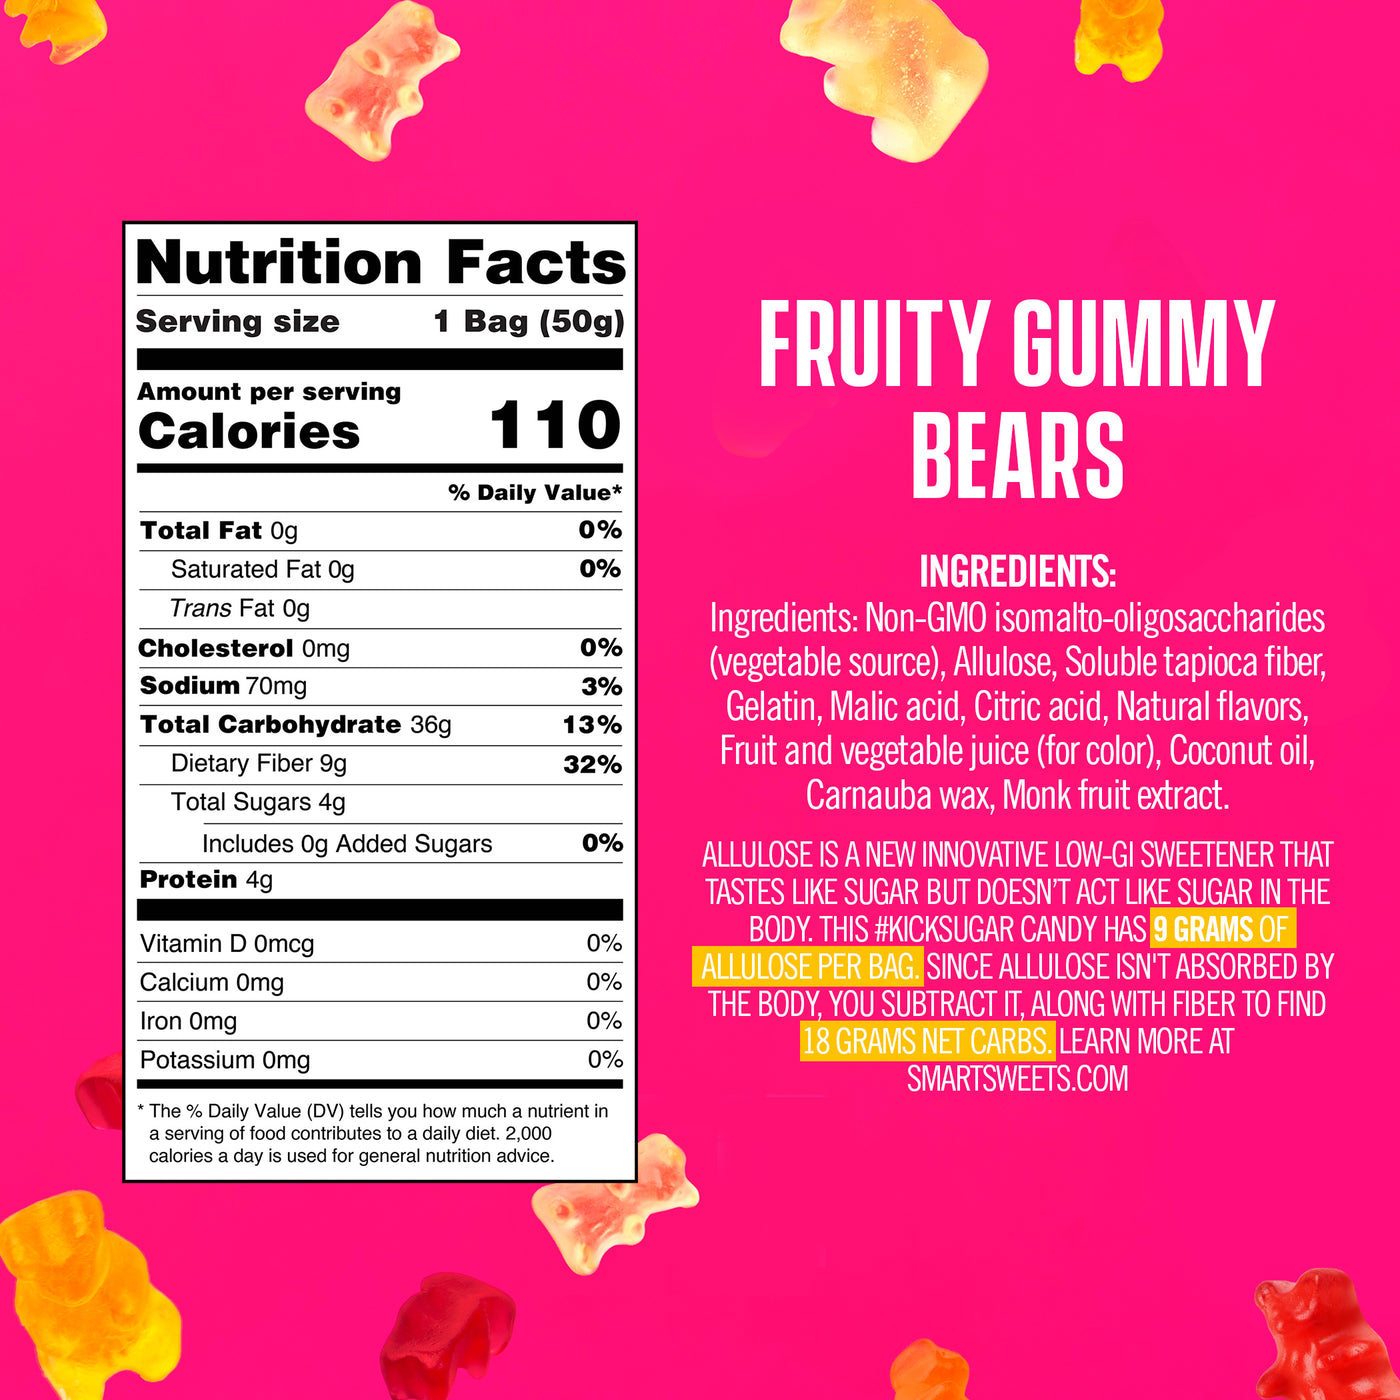 Fruity Gummy Bears